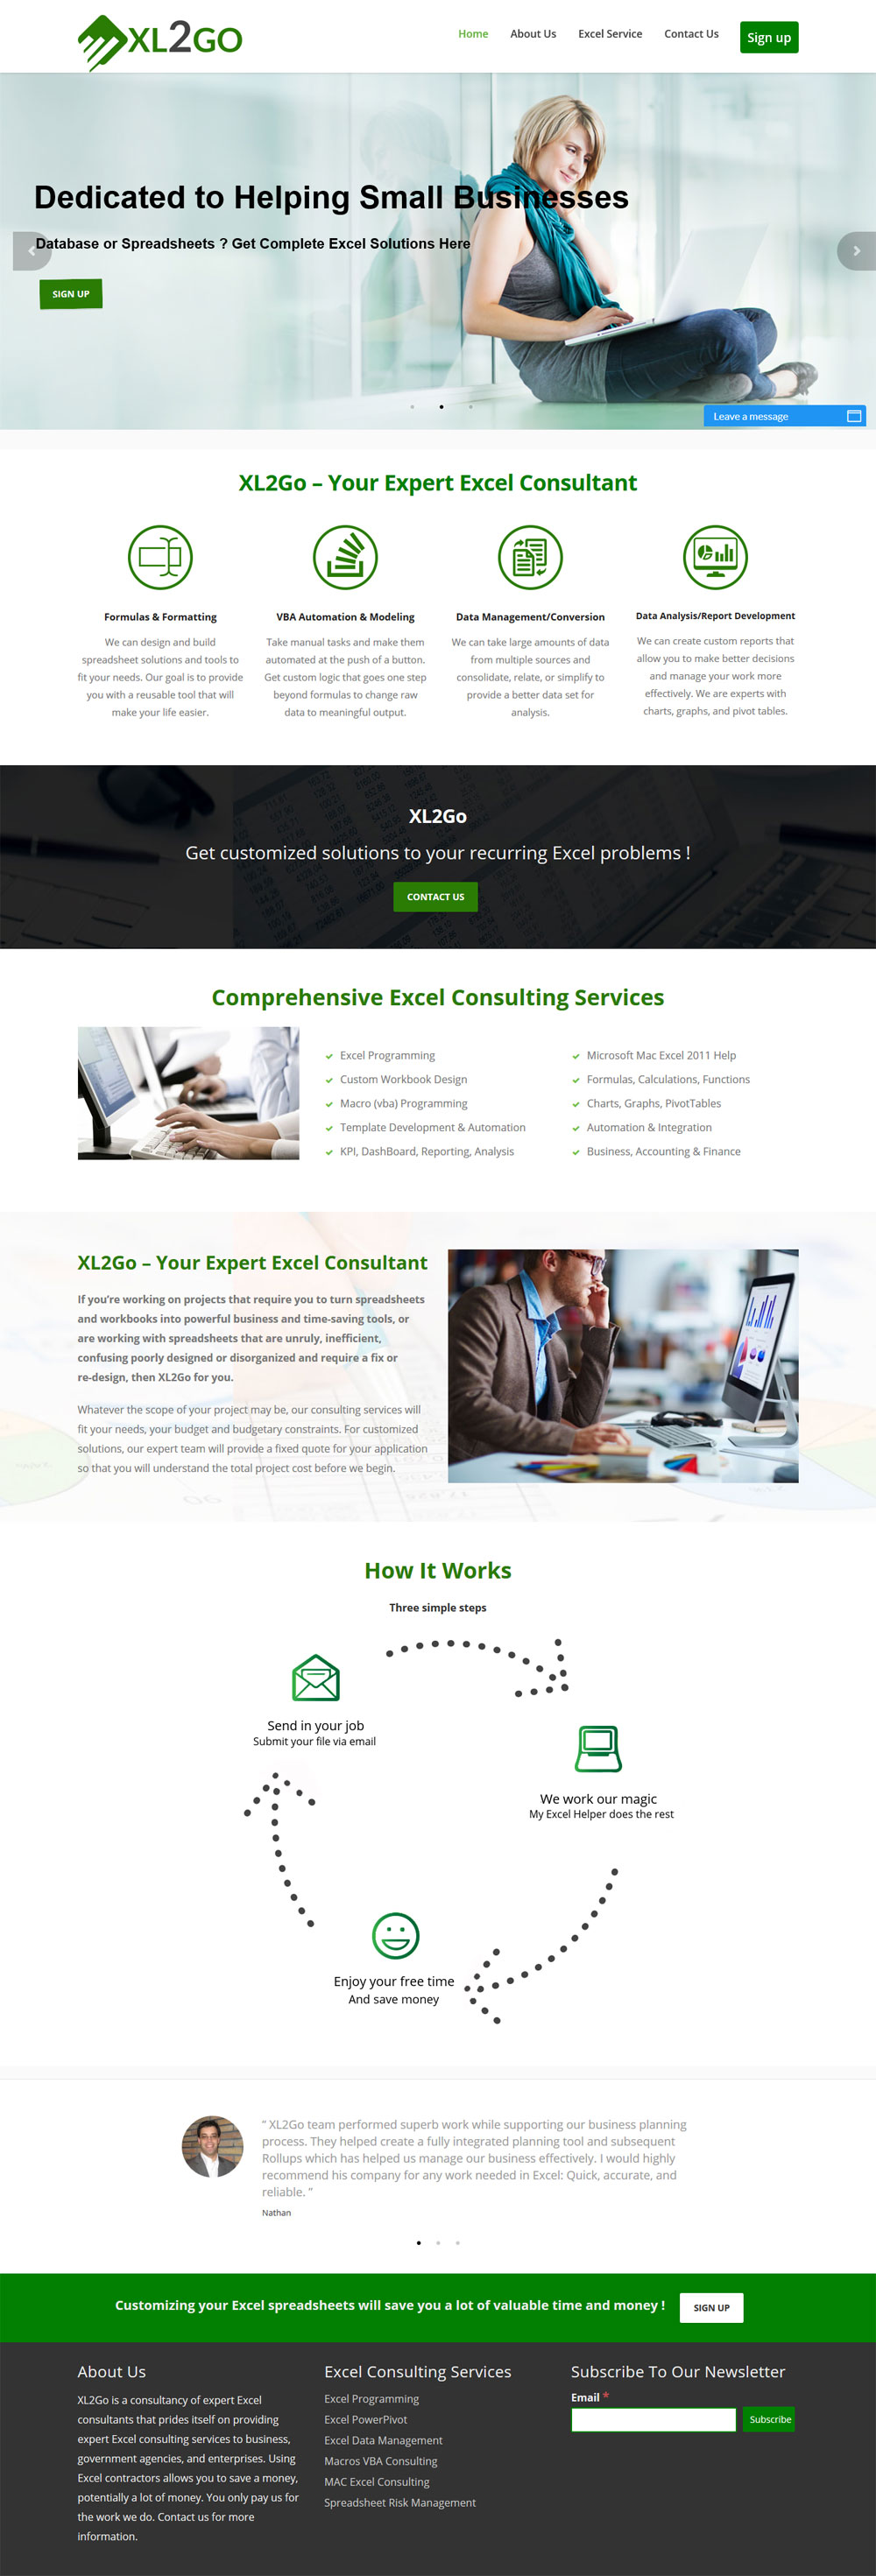 Website Design Company Niagara